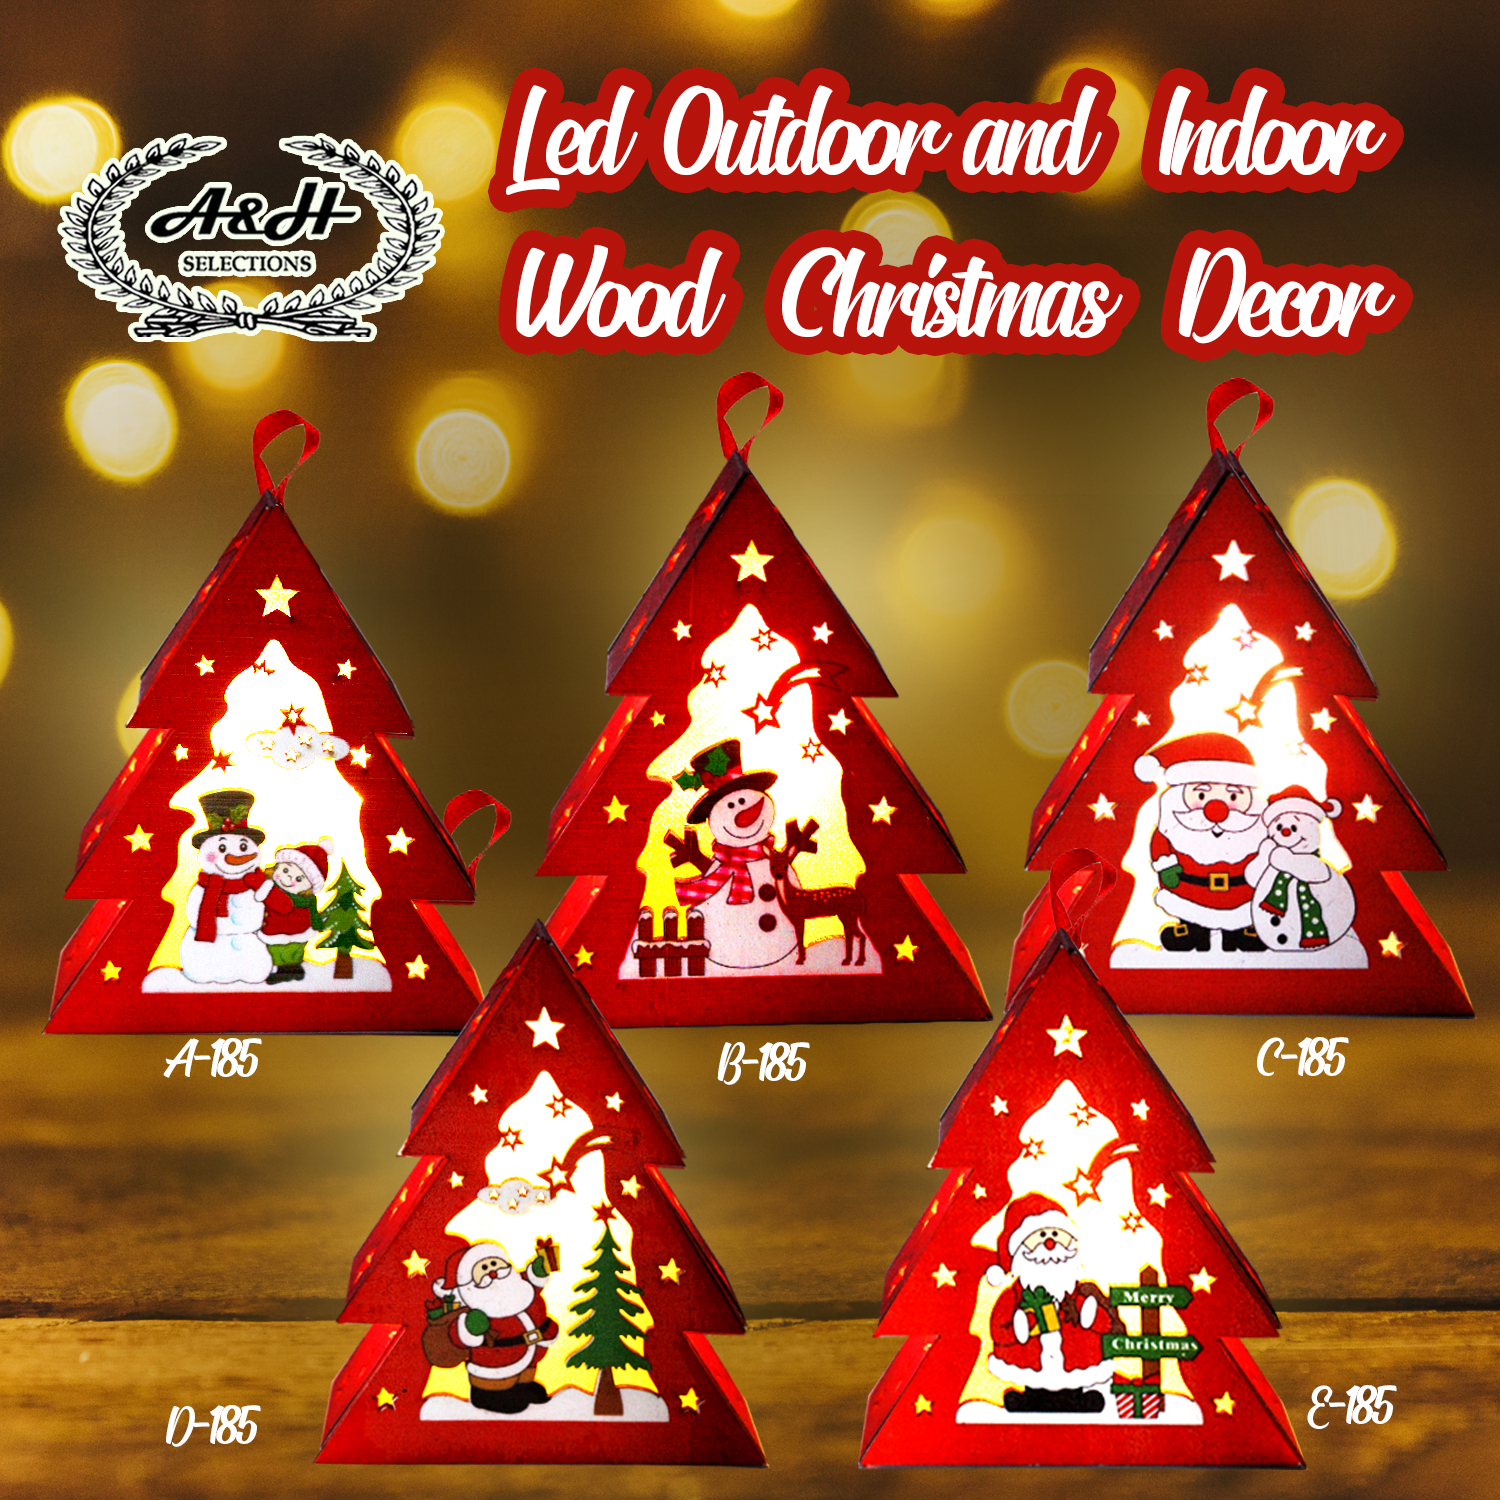 Led Christmas Decorations Indoor.A H Led Christmas Decorations Decor Tree Santa Claus Snow Man 185